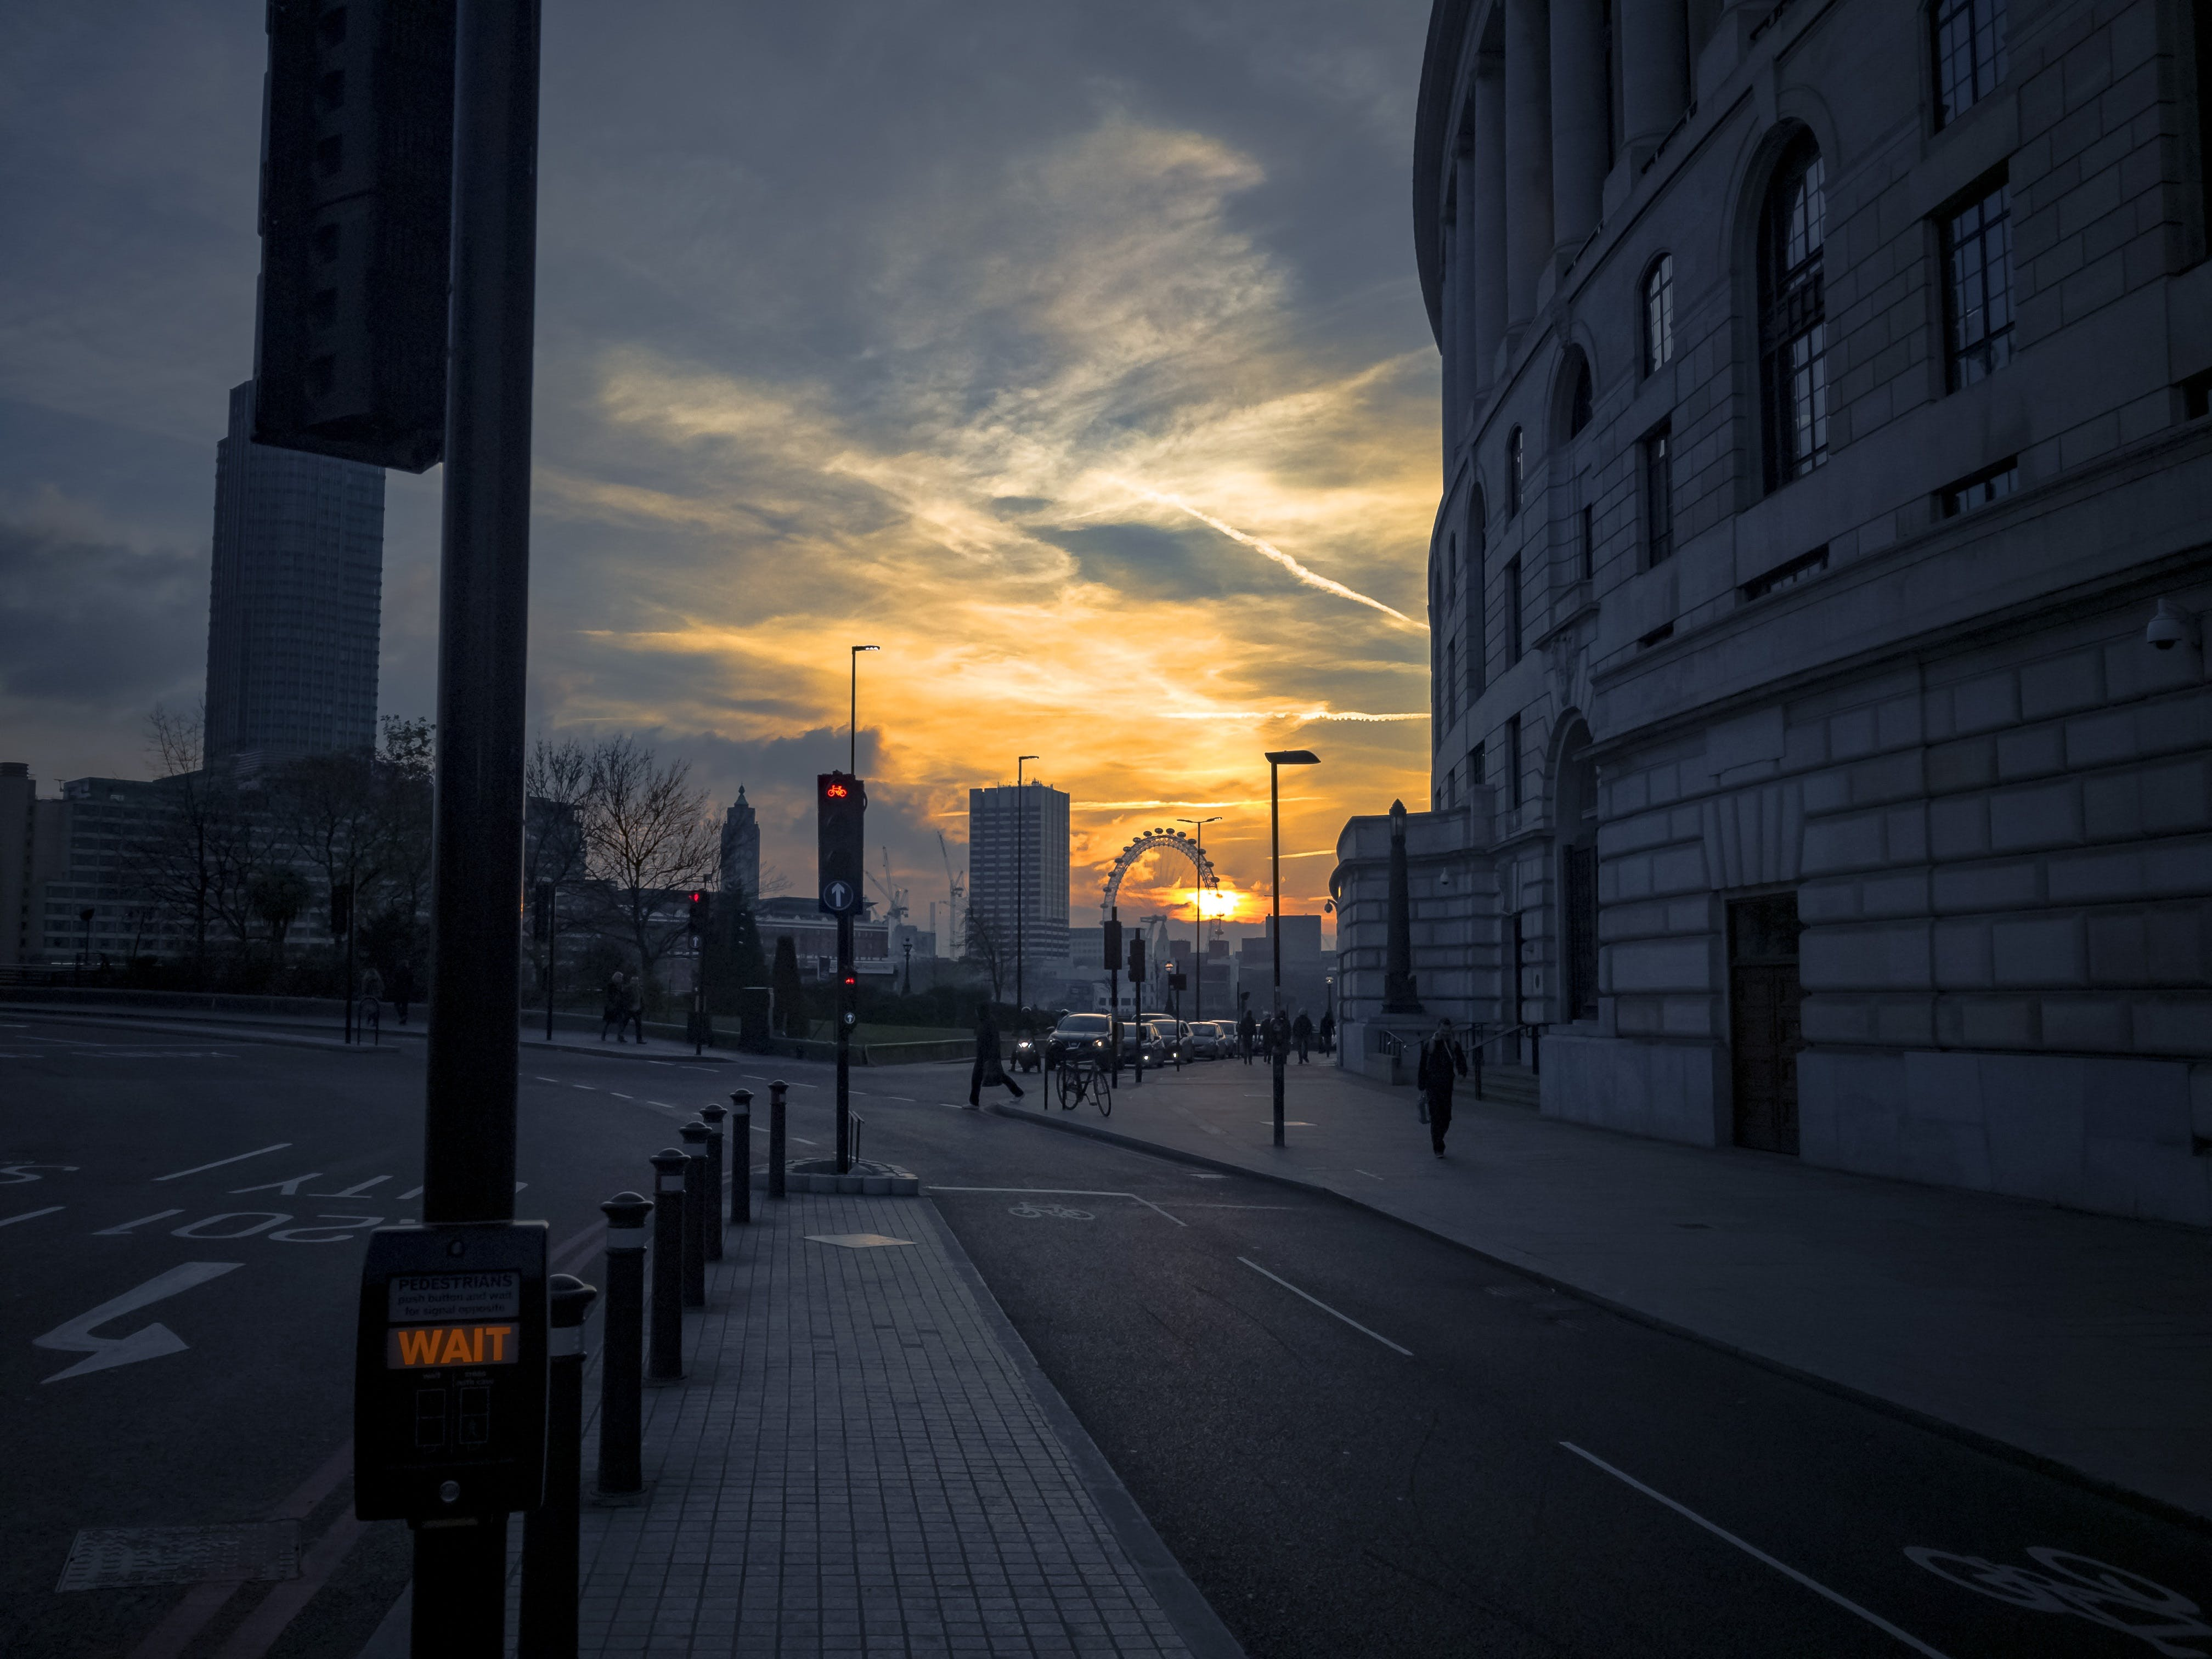 Free stock photo of light, city, road, dawn